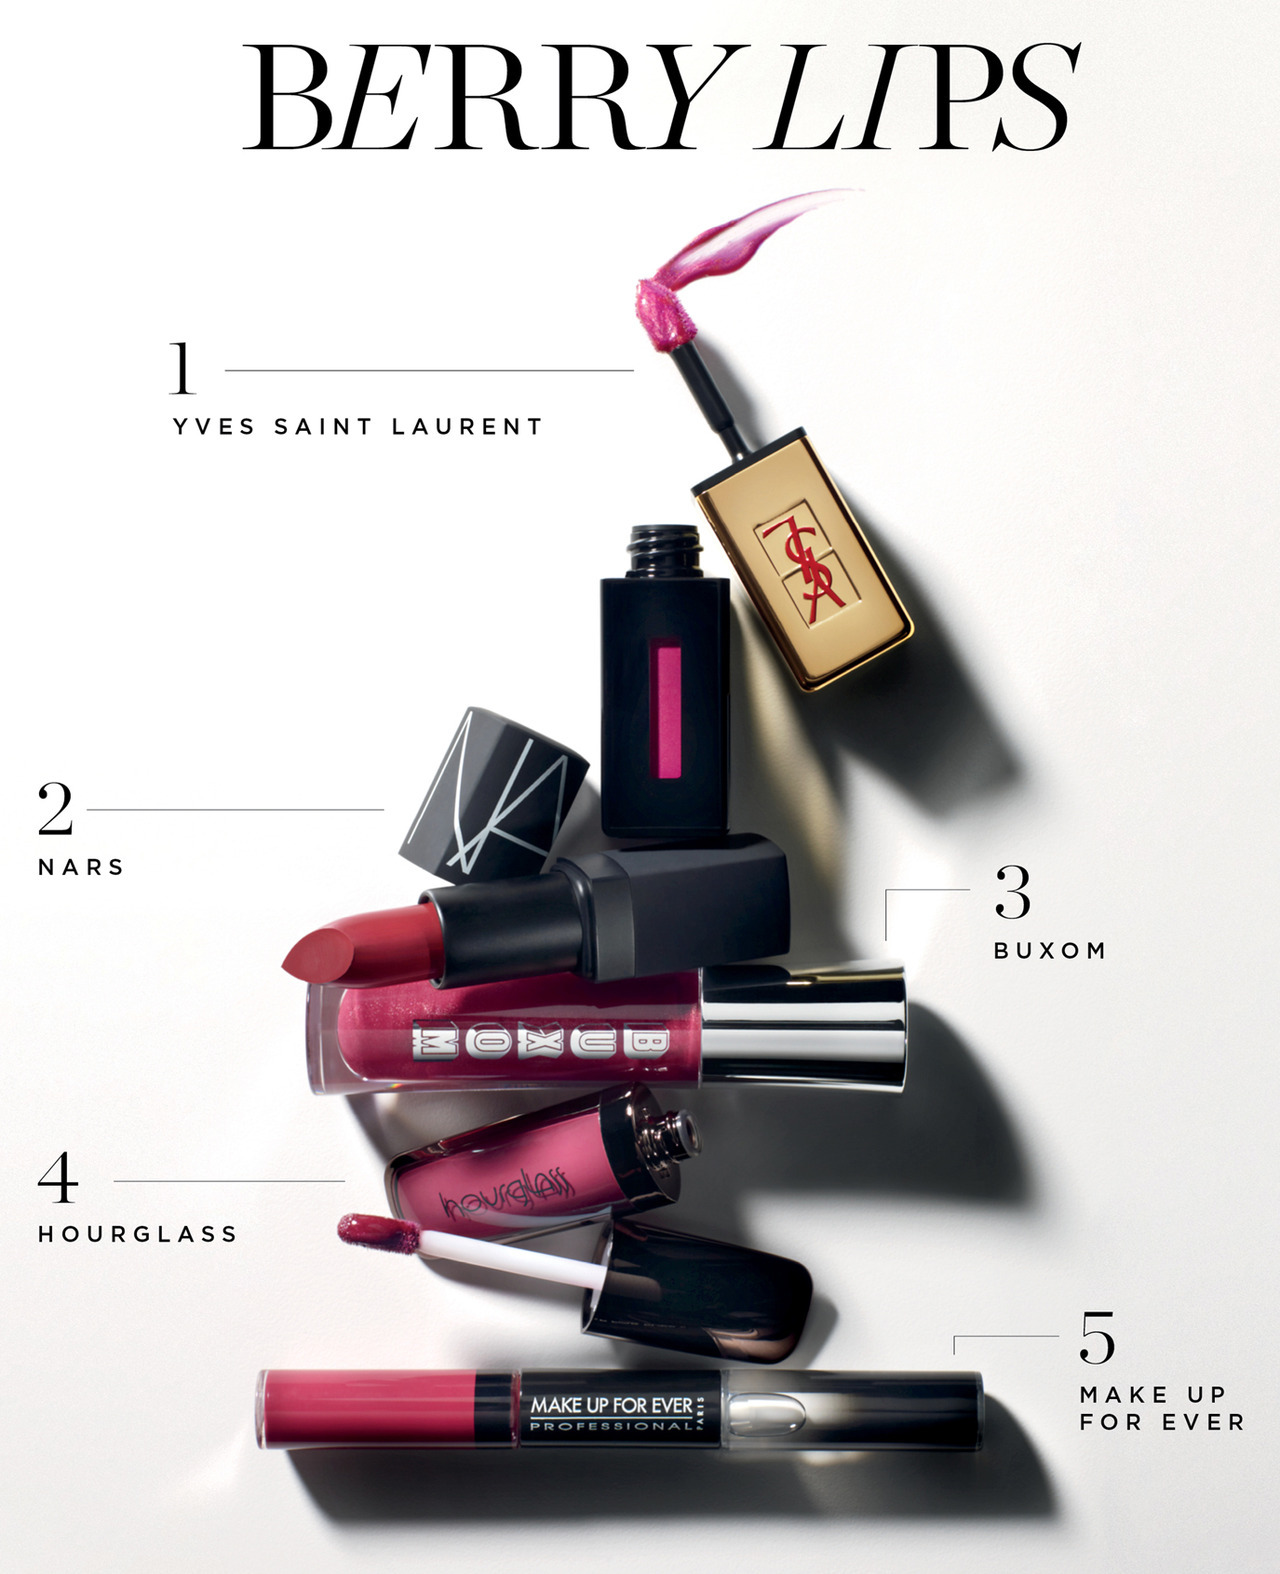 sephora: Yves Saint Laurent Rouge Pur Couture Vernis a Levres Glossy Stain in 14 Fuchsia Dore, $32 The ultimate hybrid for pigment and shine. NARS Lipstick in Gipsy, $24 Sheer, long-lasting color formulated with antioxidants and lip conditioners. Buxom Full-Bodied Lip Gloss in OMG, $19 This super-plumping gloss also delivers hydration. Hourglass Opaque Rouge Liquid Lipstick In Empress, $28 Ultra-saturated color that lasts and lasts. MAKE UP FOR EVER Aqua Rouge in #10, $24 One side of this double-ended tube offers liquid lip color, and the clear side locks it in.  Tip to #MakeItExtraordinary: Concentrate color on the center of lips for a fuller look.  YSL / Vernis À Lèvres Glossy Stain in 14 Fuschia Dore $32.00  NARS / Lipstick in Gipsy $24.00  Hourglass / Opaque Rouge Liquid Lipstick in Empress $28.00  Make Up Forever / Aqua Rouge in Raspberry $24.00  Buxom / Full-Bodied™ Lip Gloss in OMG $19.00